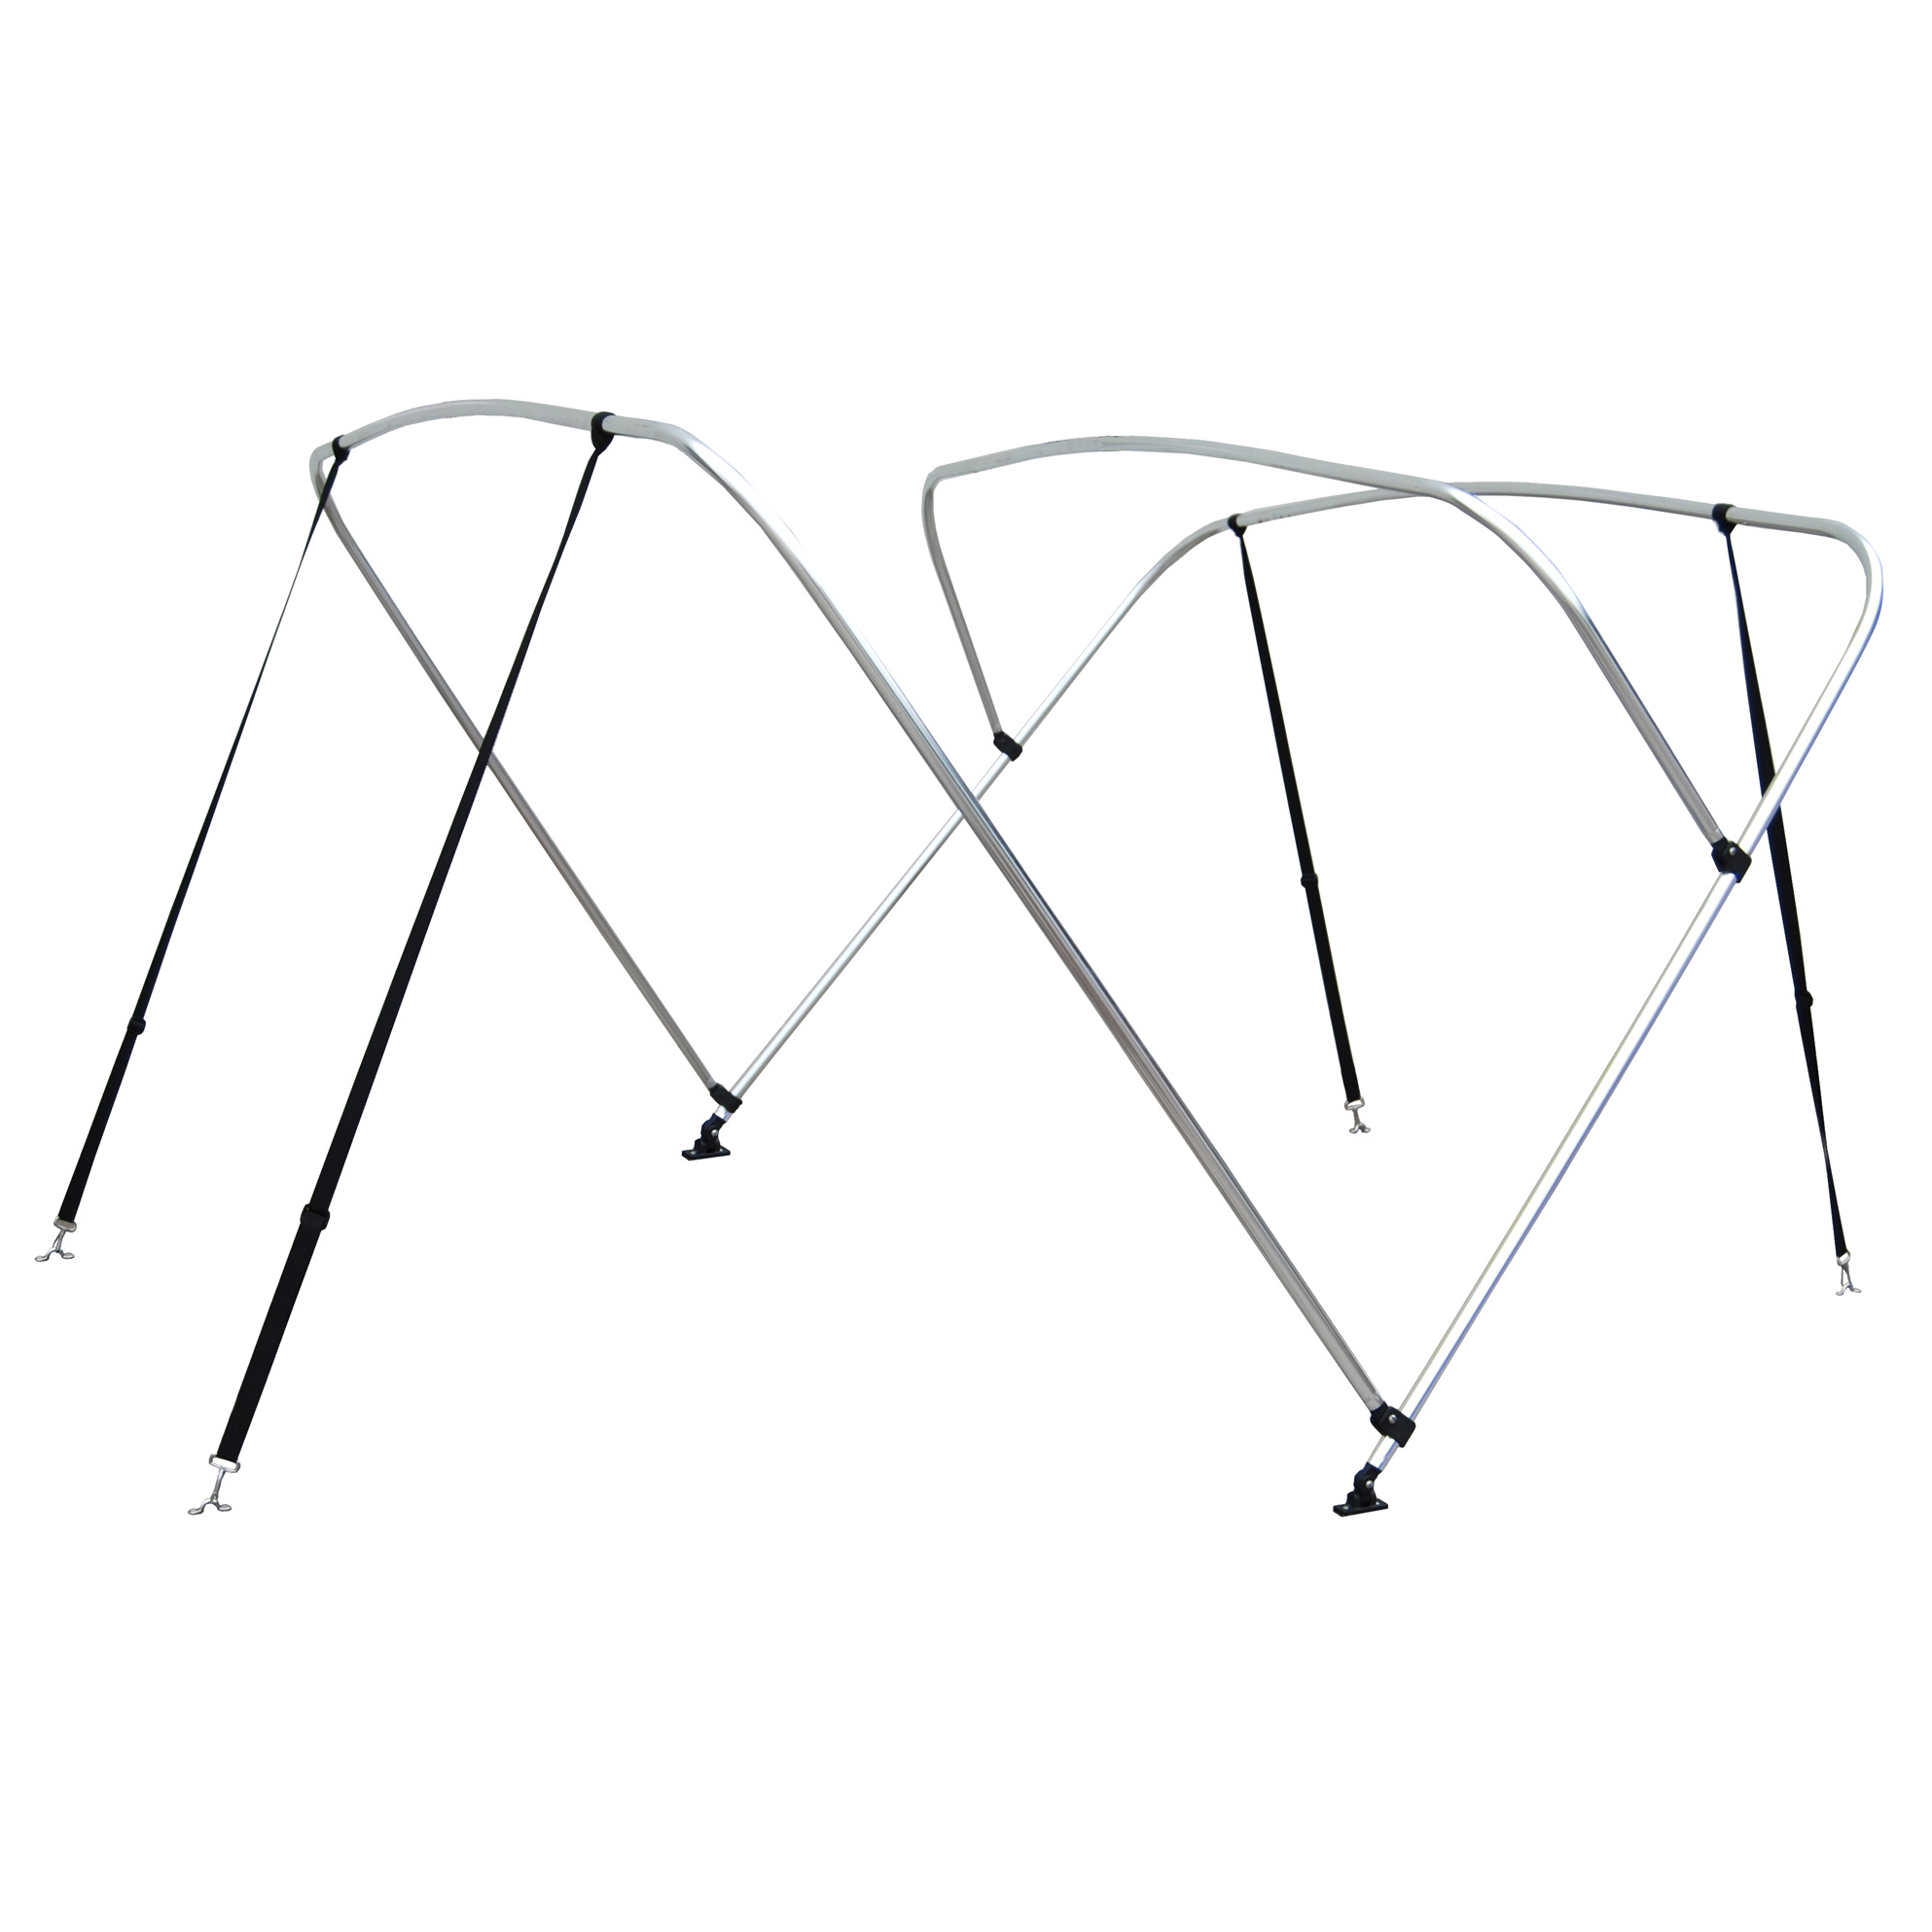 Shademate White Vinyl Stainless 4-Bow Bimini Top 8'L x 54''H 54''-60'' Wide